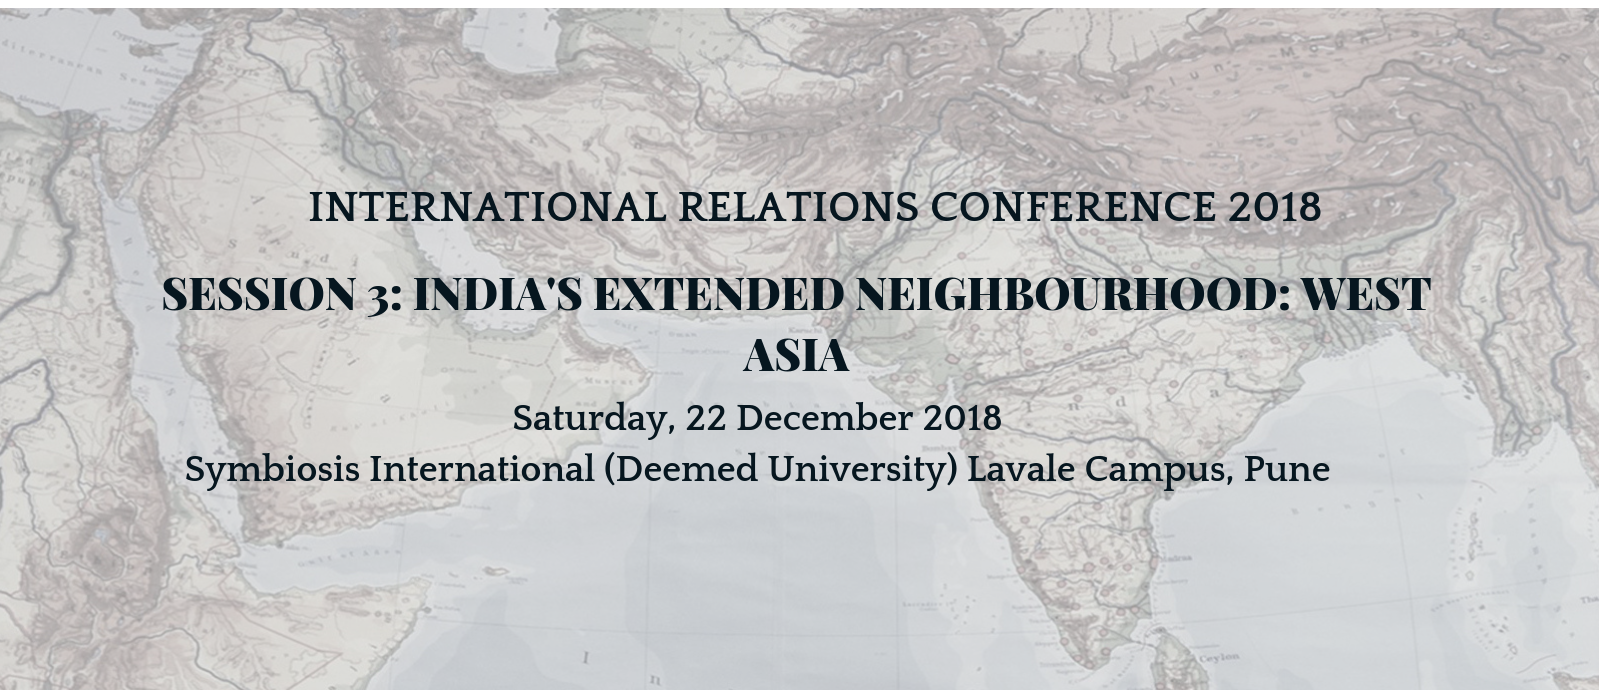 International Relations Conference 2018, Pune - Prospects for India's Ties With EU, Russia And Central Asia